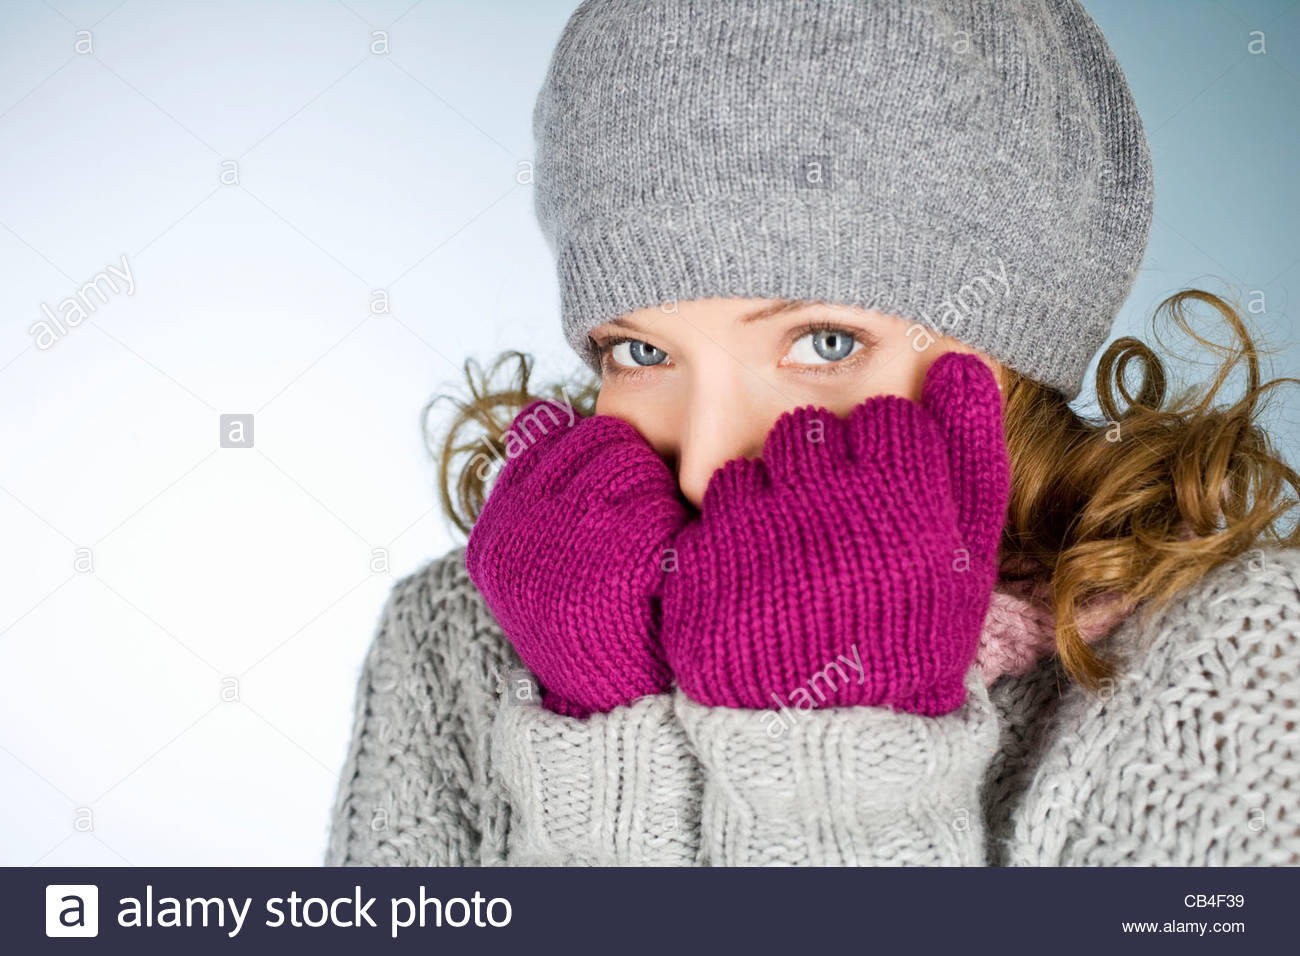 A young woman wearing hat and gloves, trying to keep warm - Stock Image